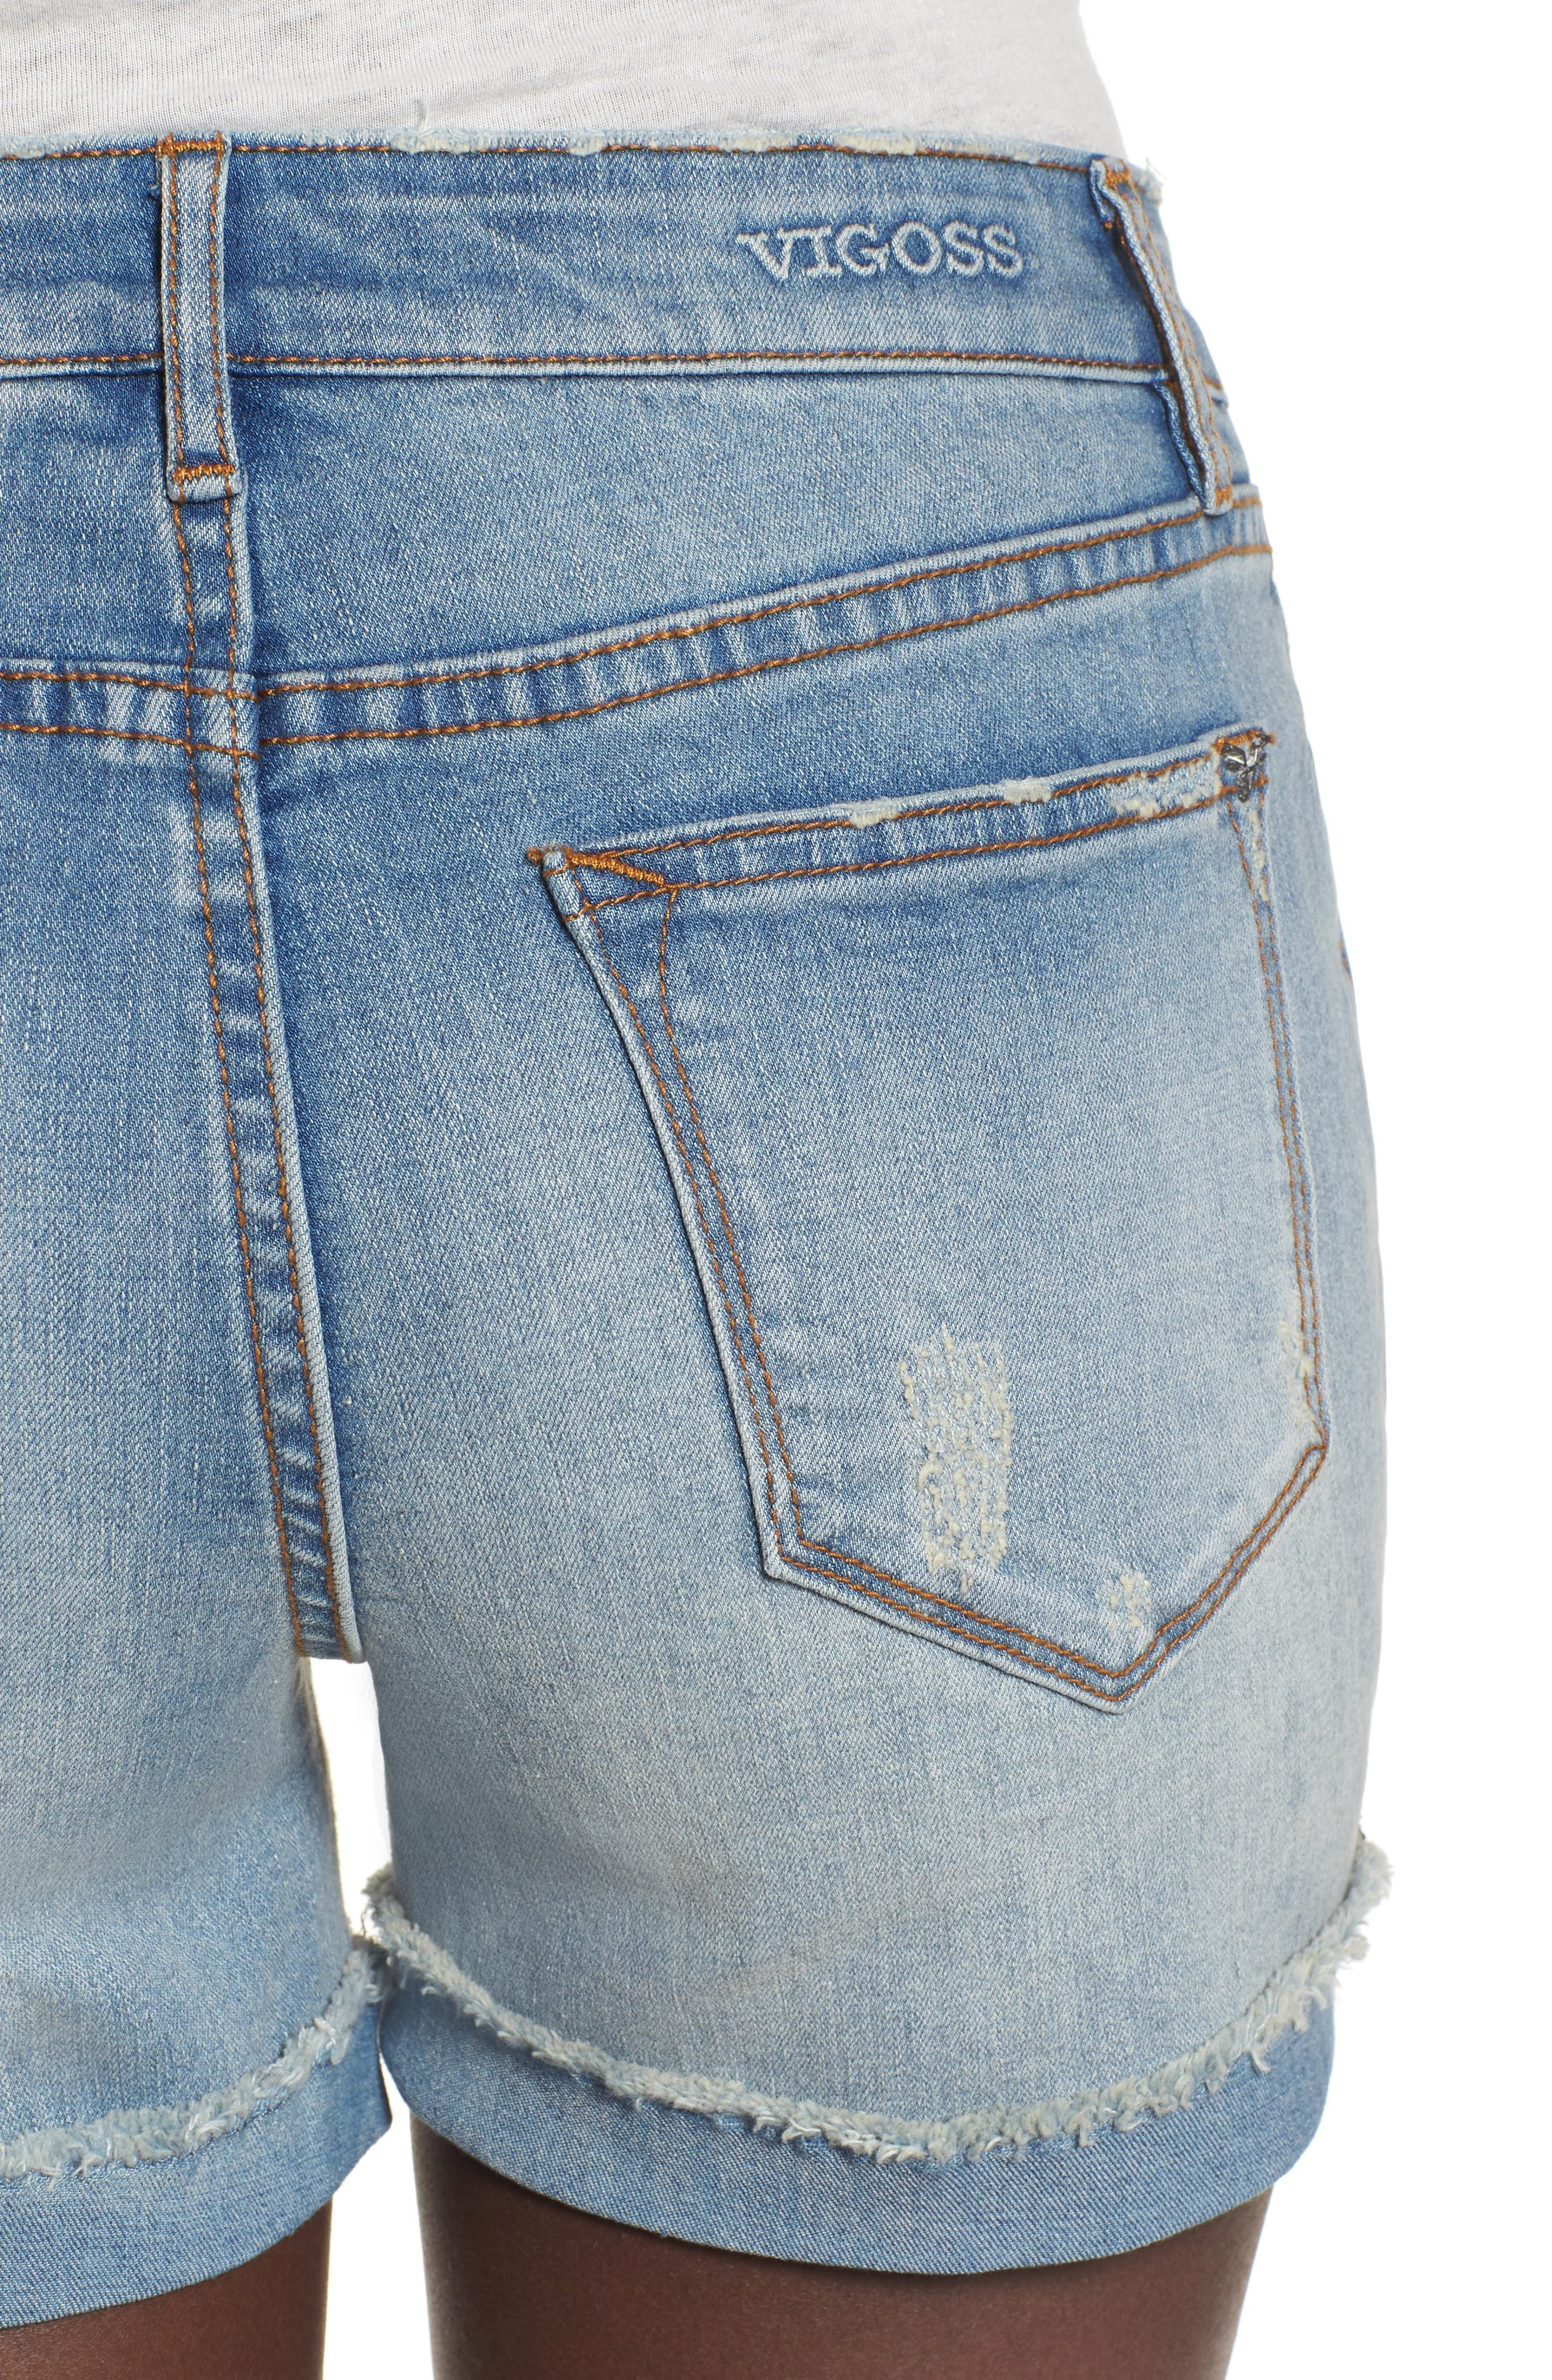 Marley Denim Shorts,                             Alternate thumbnail 4, color,                             461